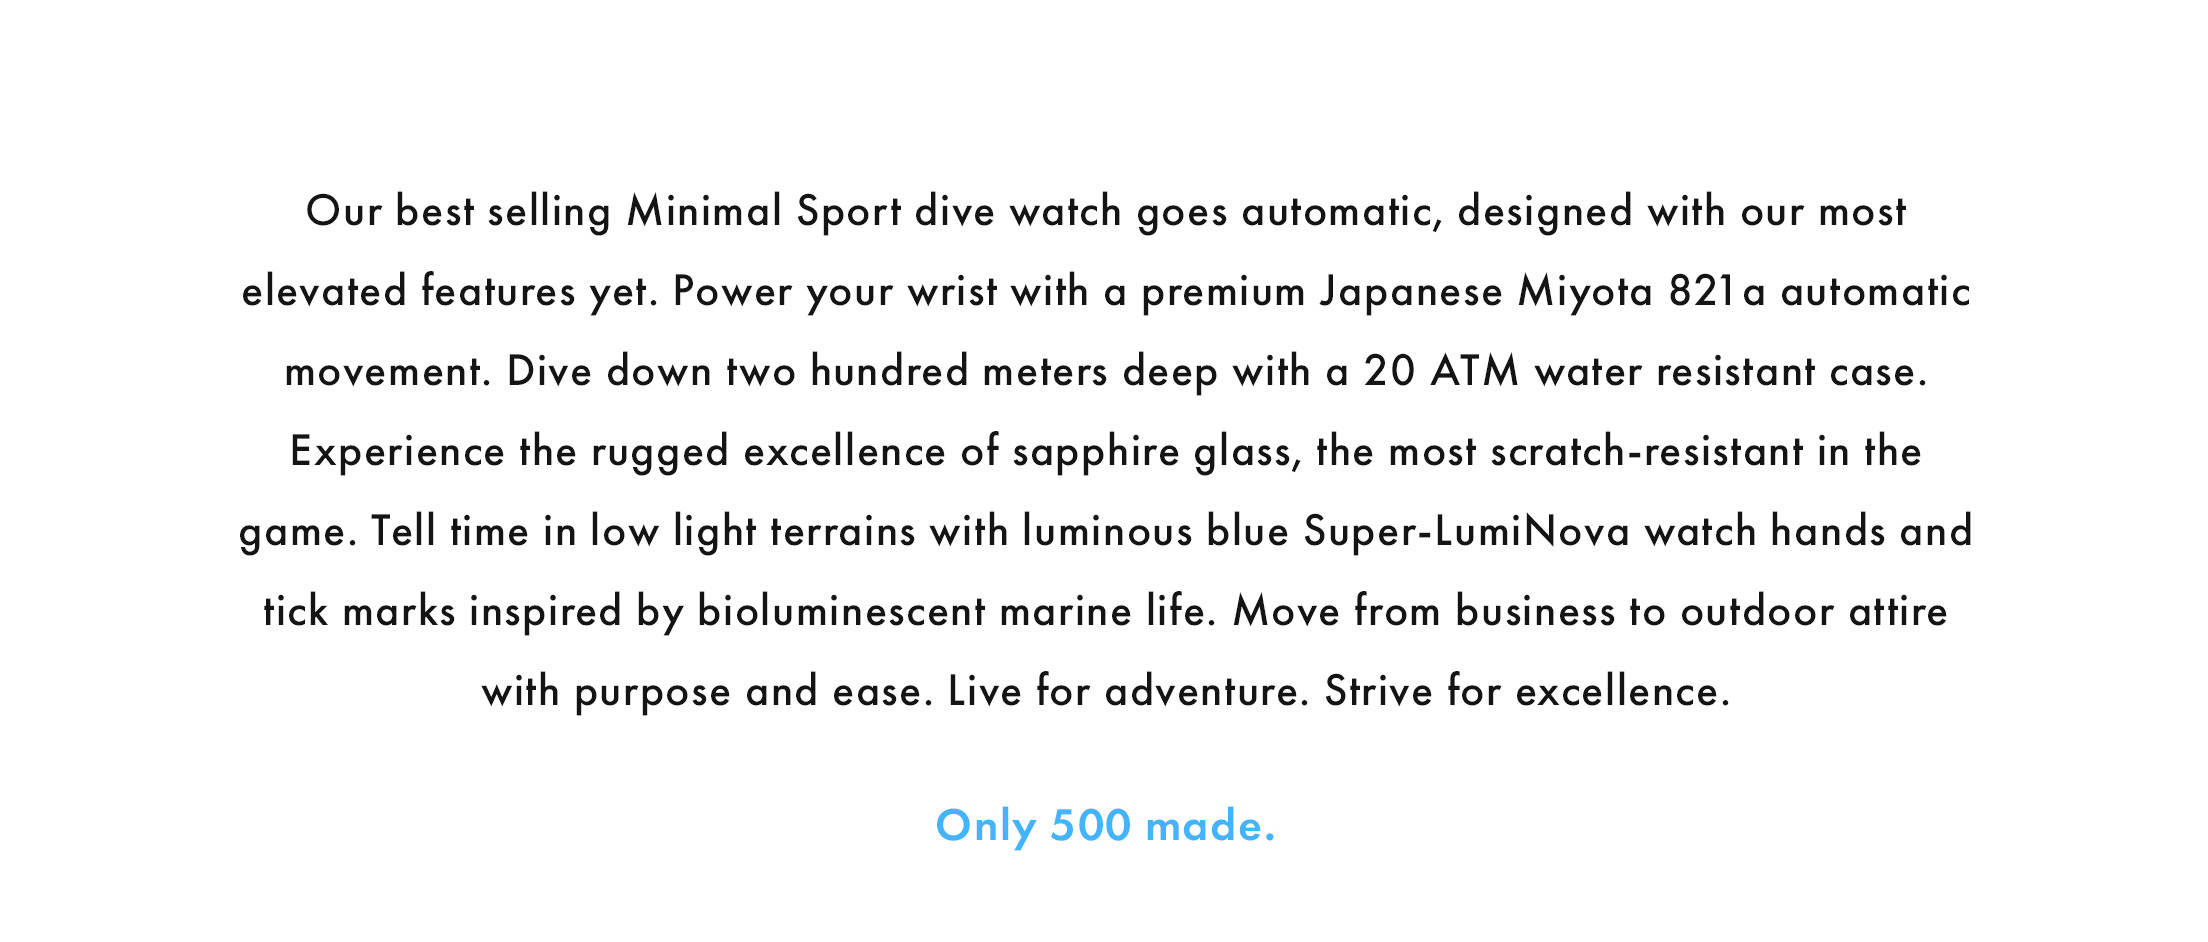 Our best-selling Minimal Sport dive watch goes automatic, designed with our most elevated features yet. Power your wrist with a premium Japanese Miyota 821 a automatic movement. Dive down two hundred meters deep with a 20 ATM water resistant case. Experience the rugged excellence of sapphire glass, the most scratch-resistant in the game. Tell time in low light terrains with luminous blue Super-LumiNova watch hands and tick marks inspired by bioluminescent marine life. Move from business to outdoor attire with purpose and ease. Live for adventure. Strive for excellence. Only 500 made.